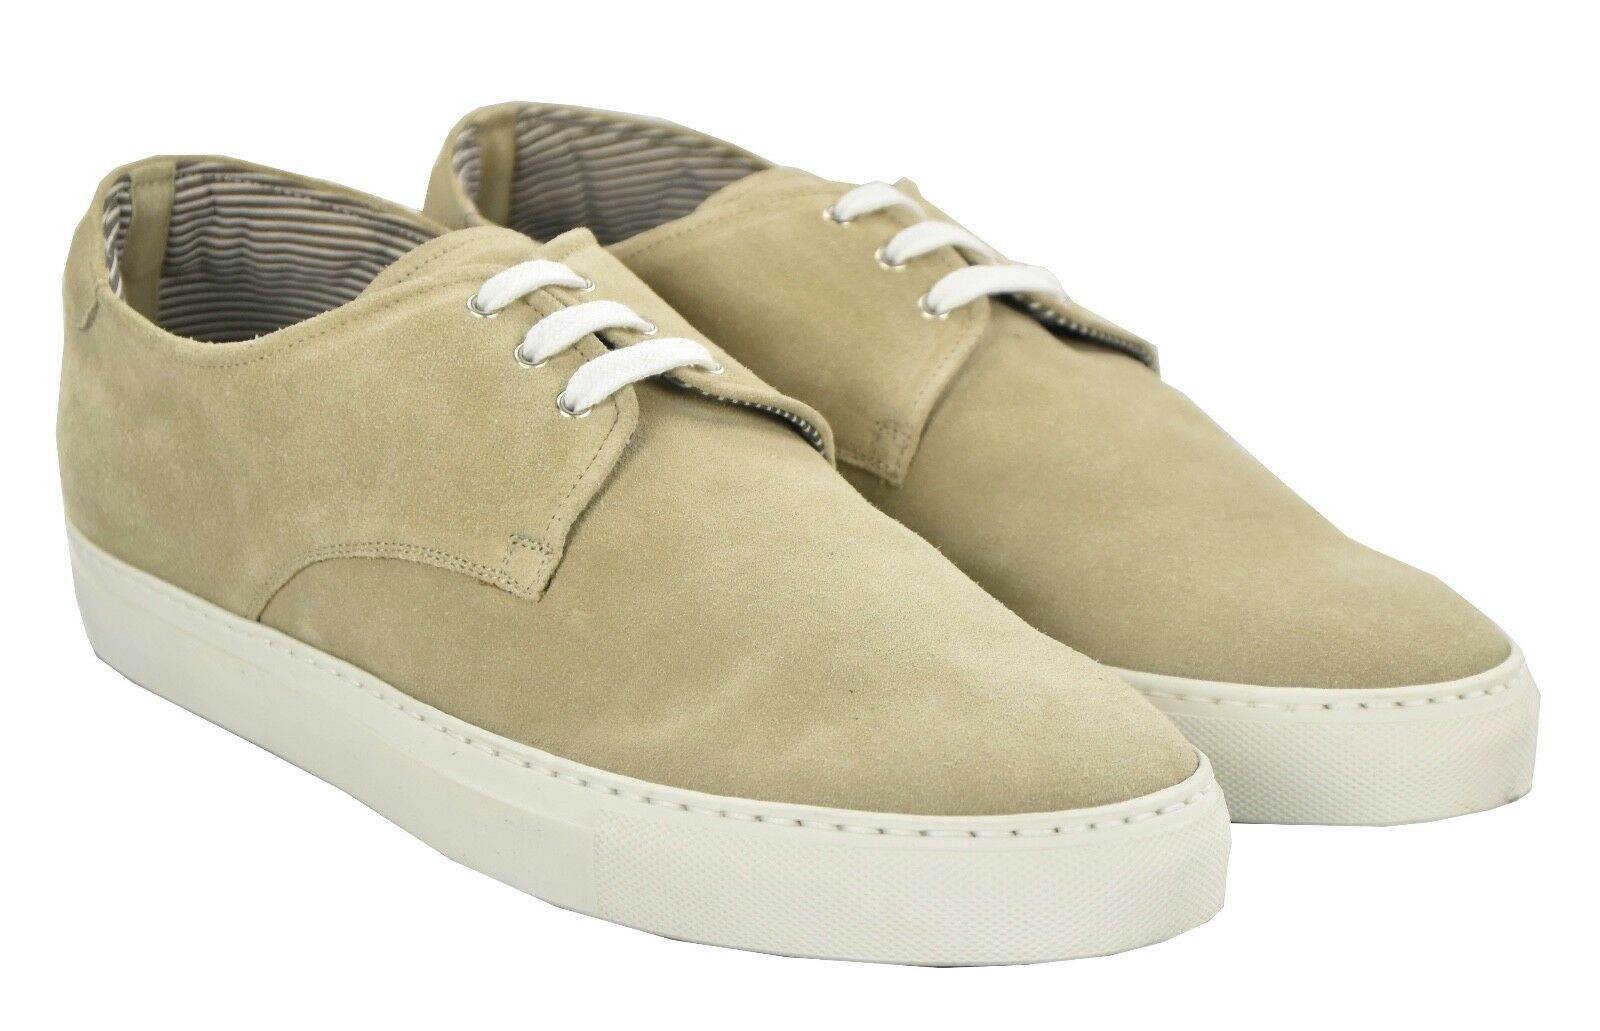 NEW KITON NAPOLI SNEAKERS SHOES 100% LEATHER SUEDE SIZE 13 US 46 O66